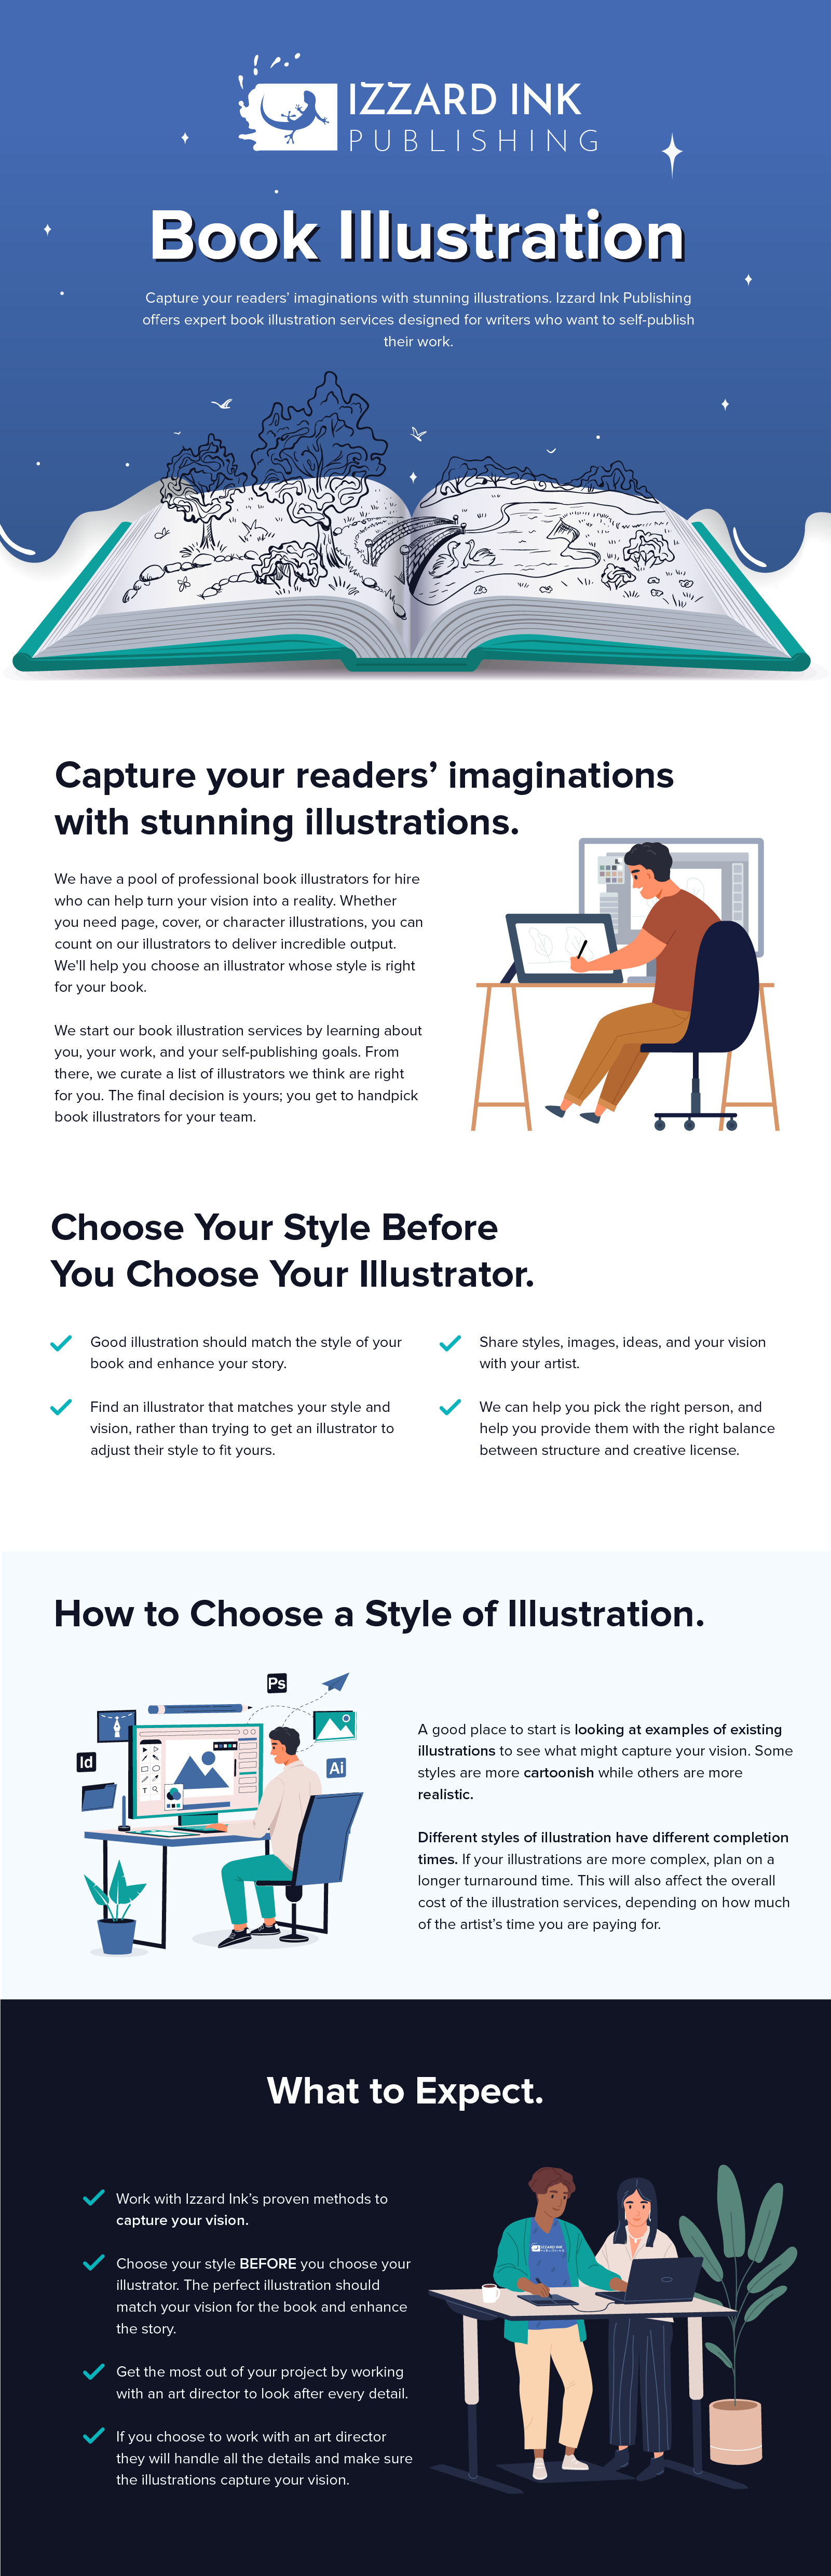 Book Illustrator Services Infographic